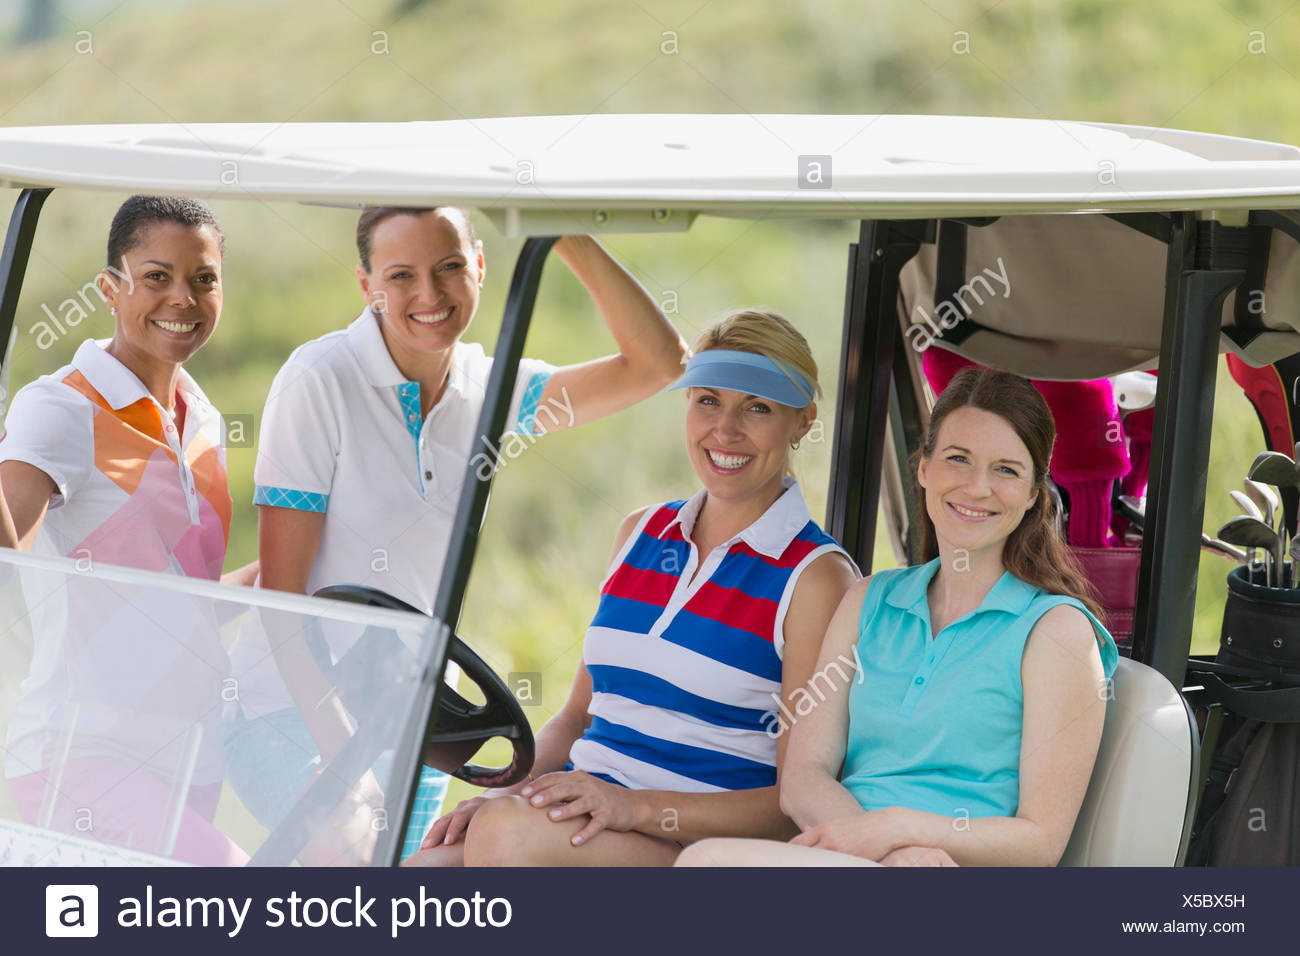 portrait of four female golfers by golf cart - Stock Image